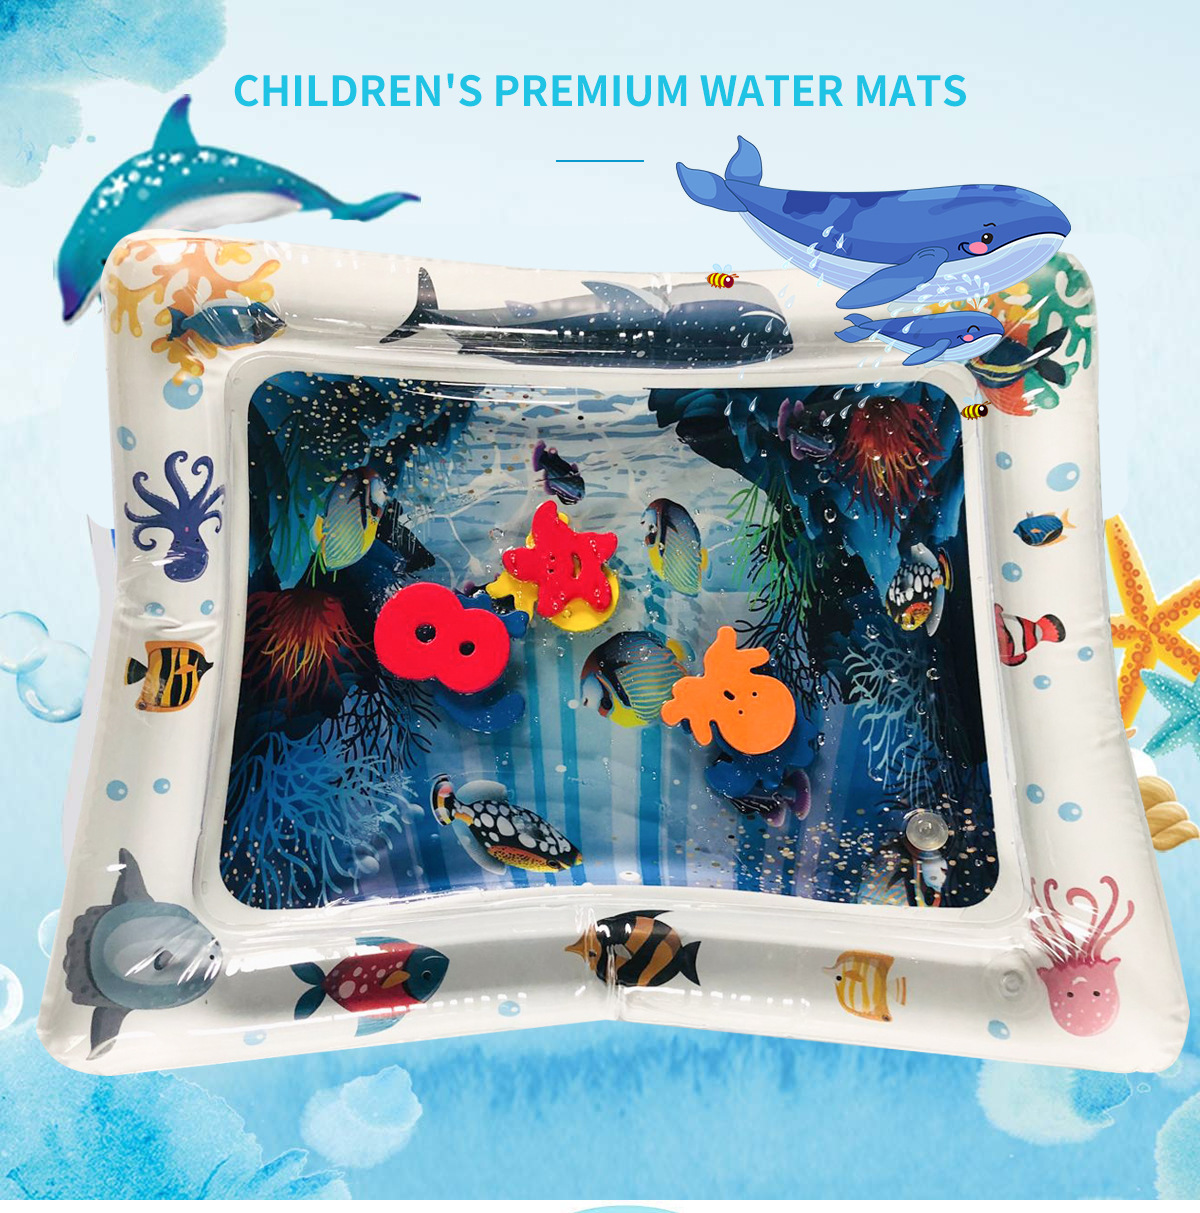 HTB1.A8dMHrpK1RjSZTEq6AWAVXaw 2019 Creative Water Mat Baby Inflatable Patted Pad Baby Inflatable Water Cushion Infant Play Mat Toddler Funny Pat Pad Toys